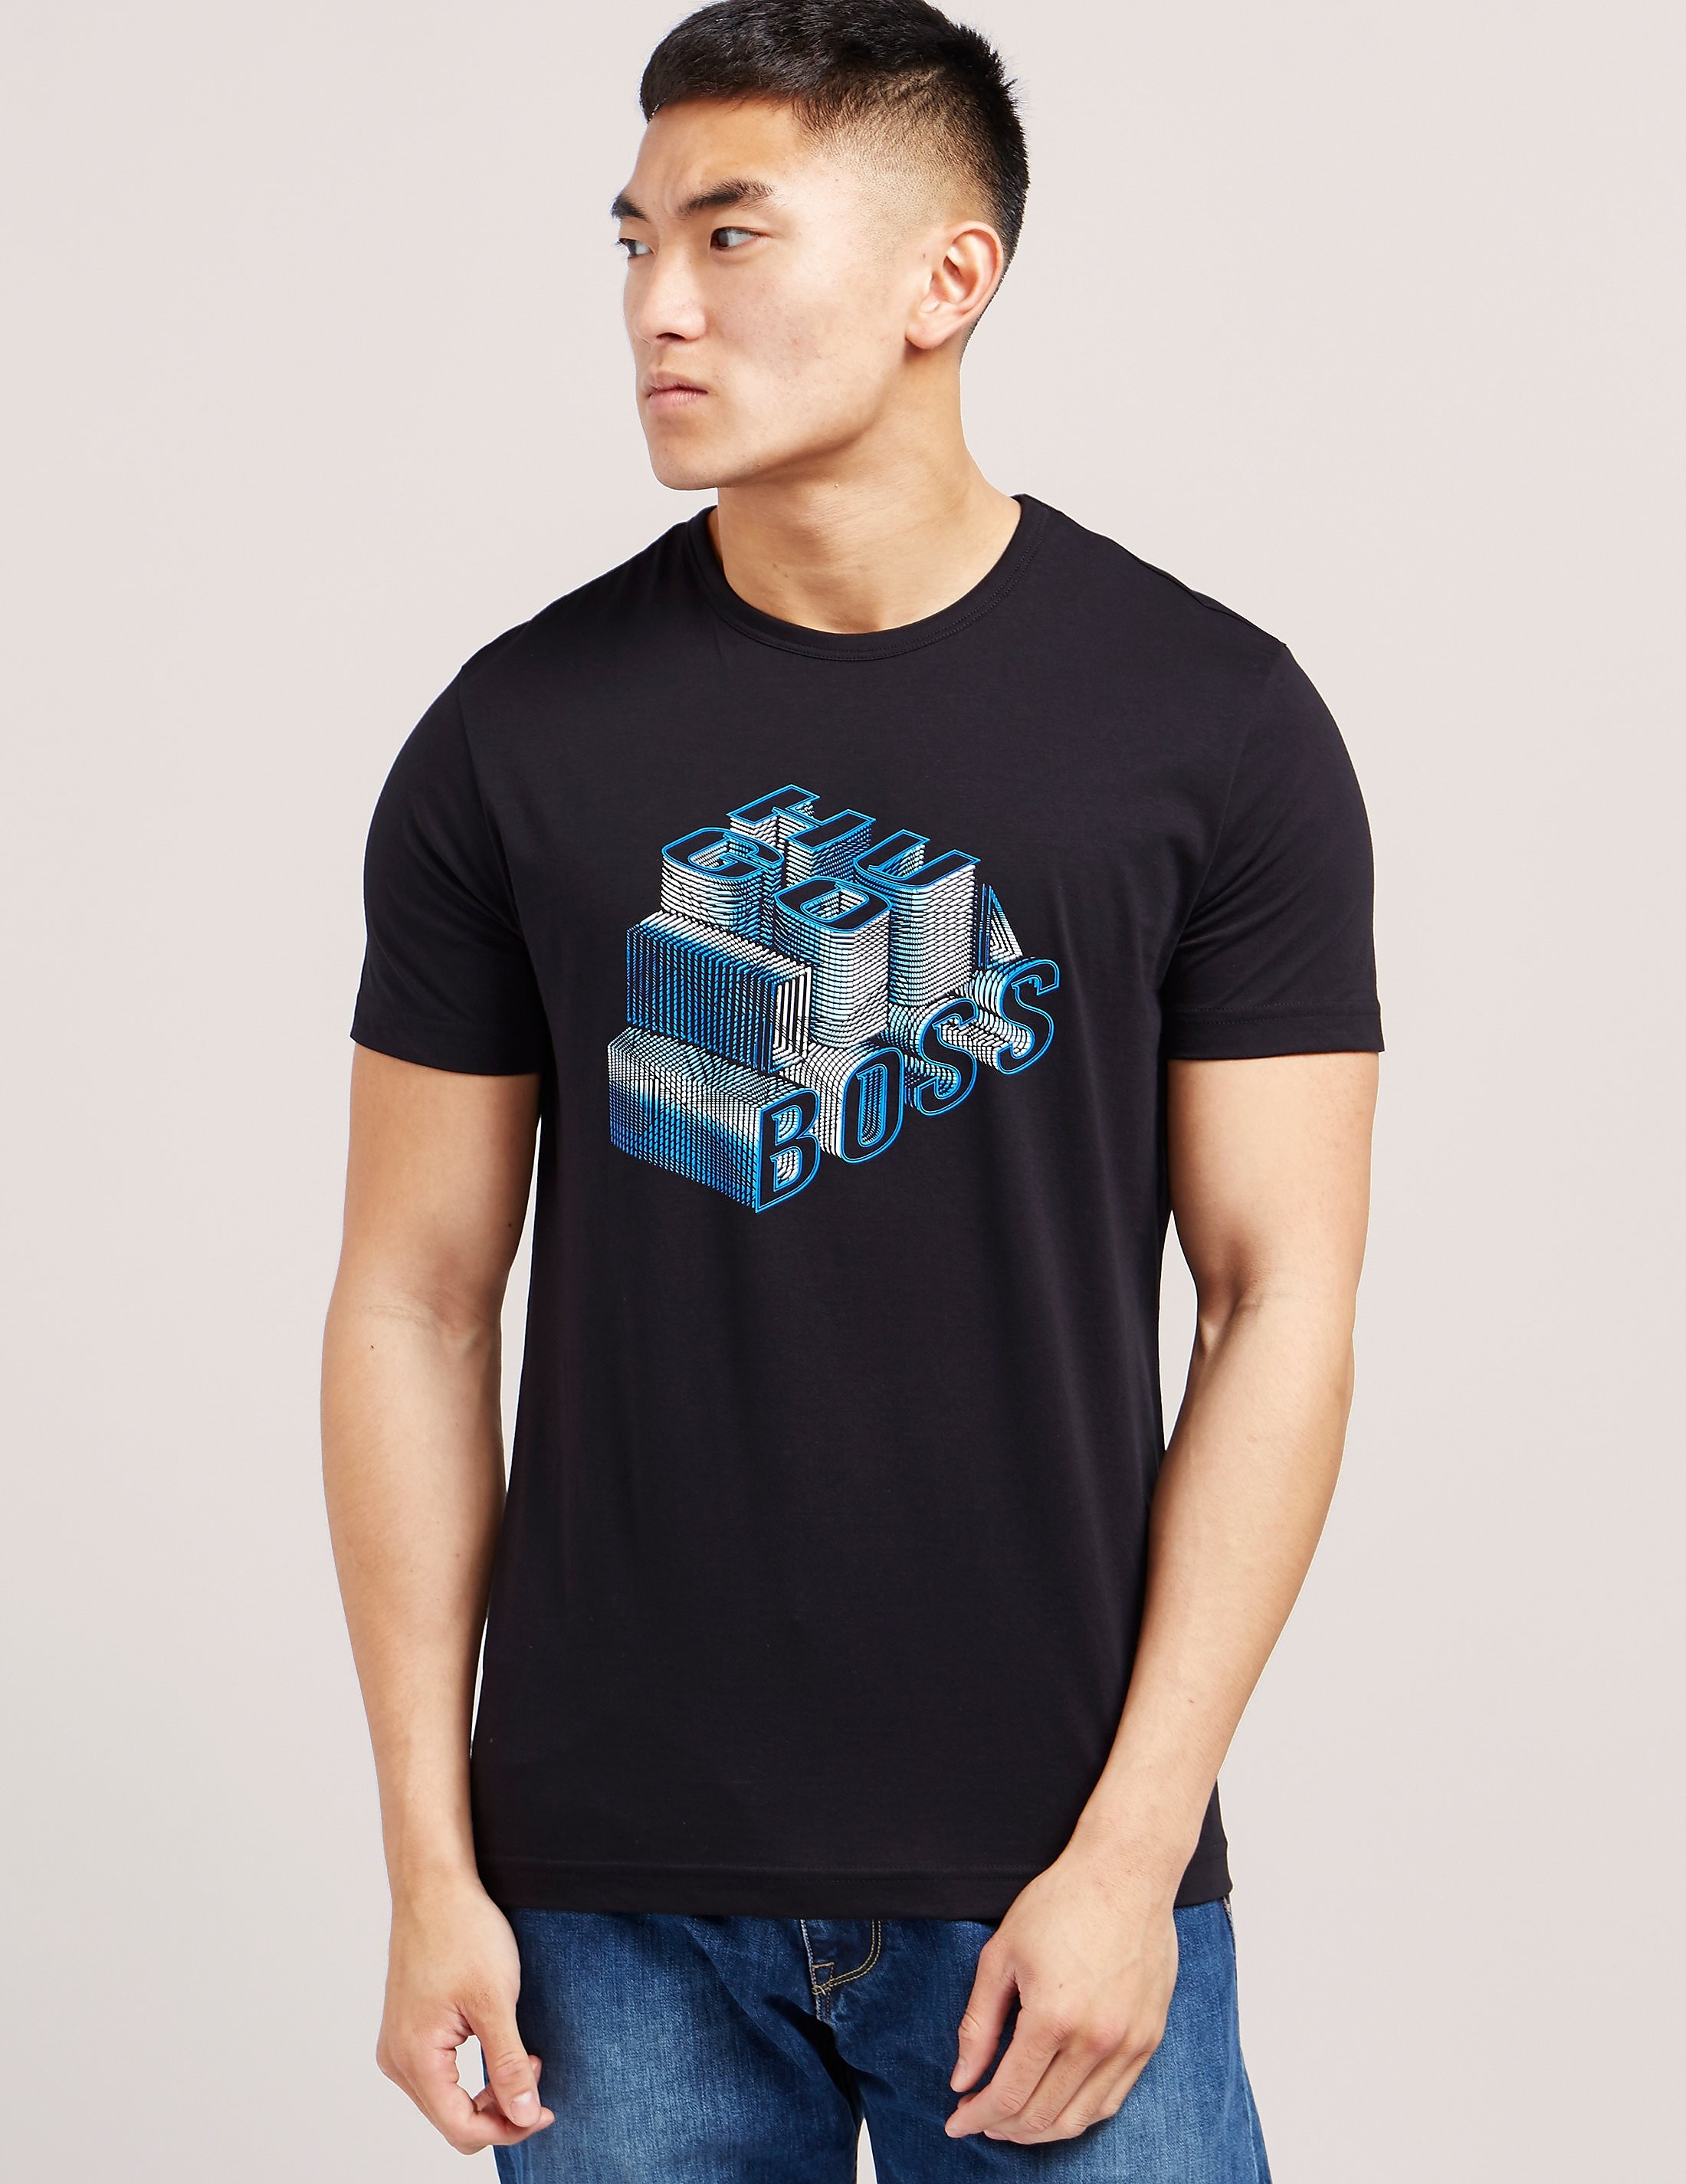 BOSS Green 3-D Short Sleeve T-Shirt